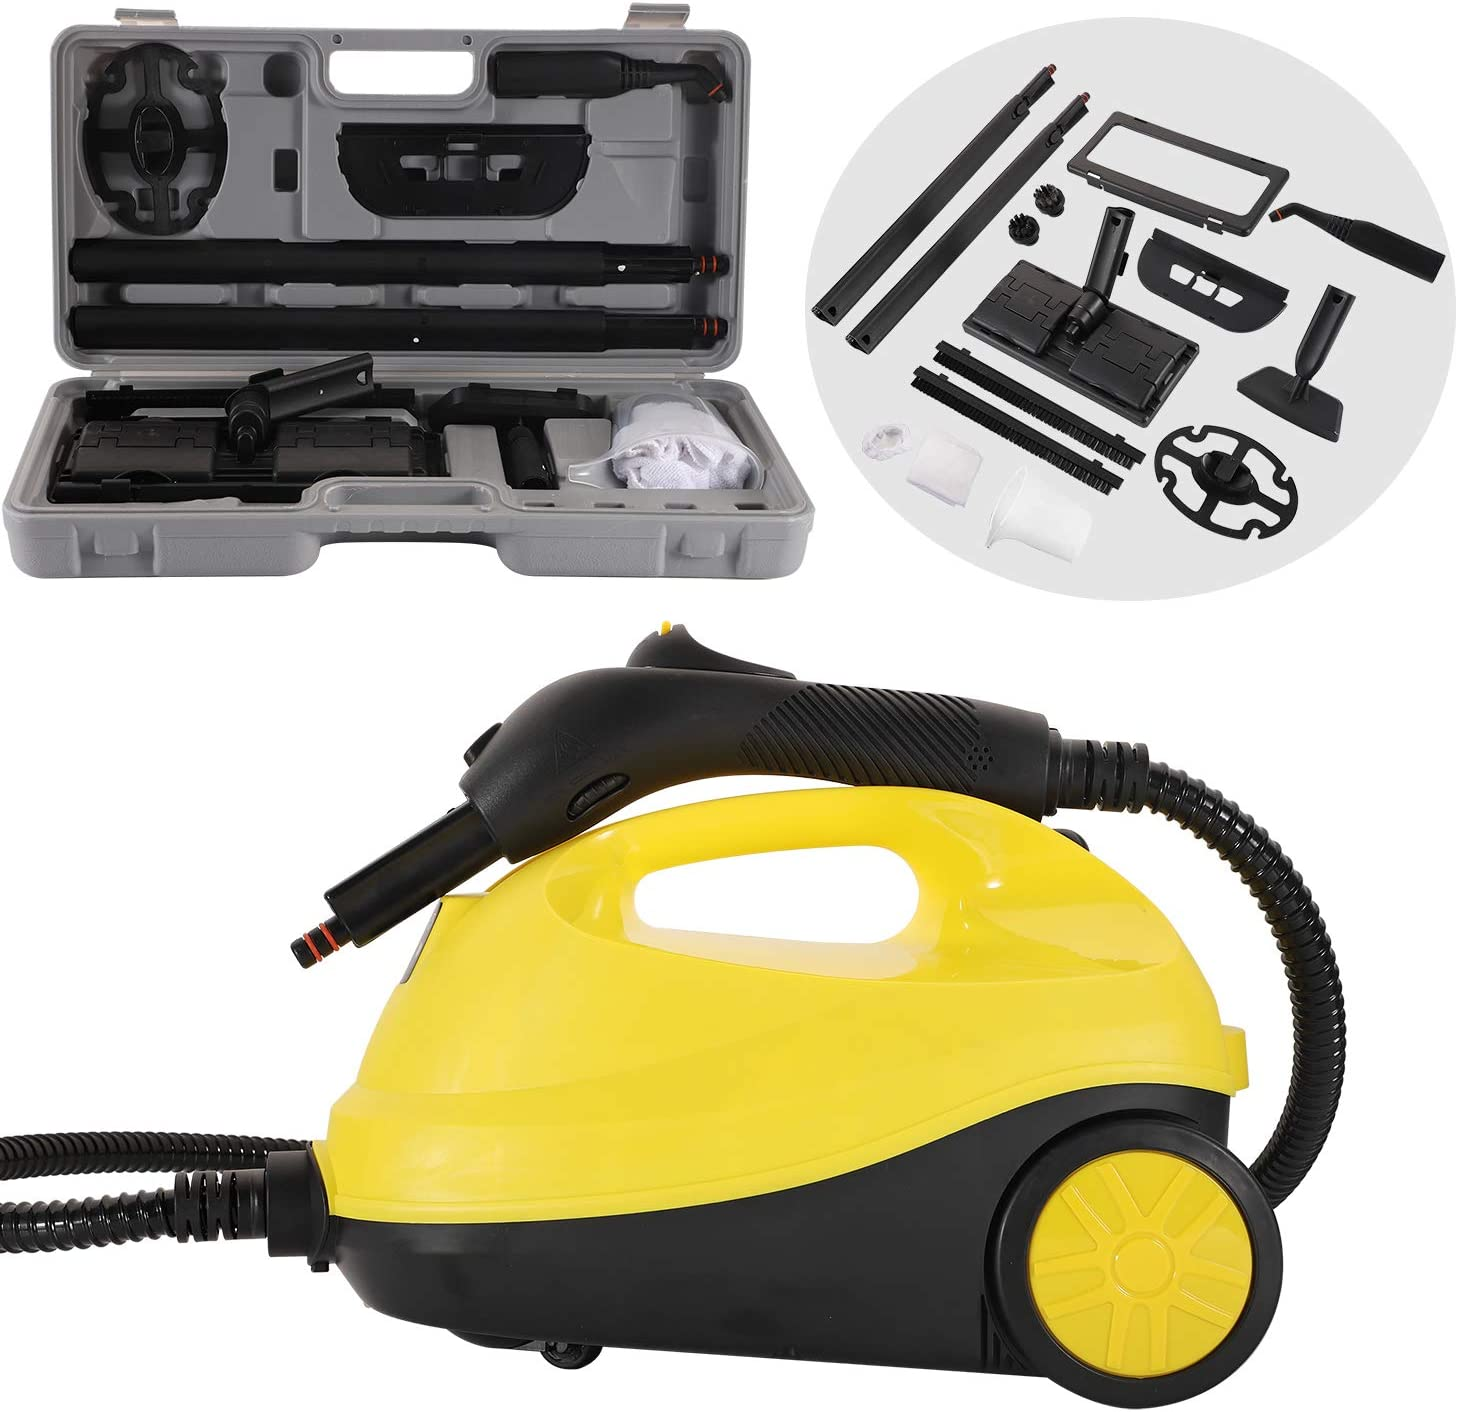 CGOLDENWALL Multi-Purpose Steam Cleaner 2000W Adjustable Heavy Duty Rolling Cleaning Machine Home Steamer for Floor Carpet with 12 Accessories (Yellow, with Storage Box)